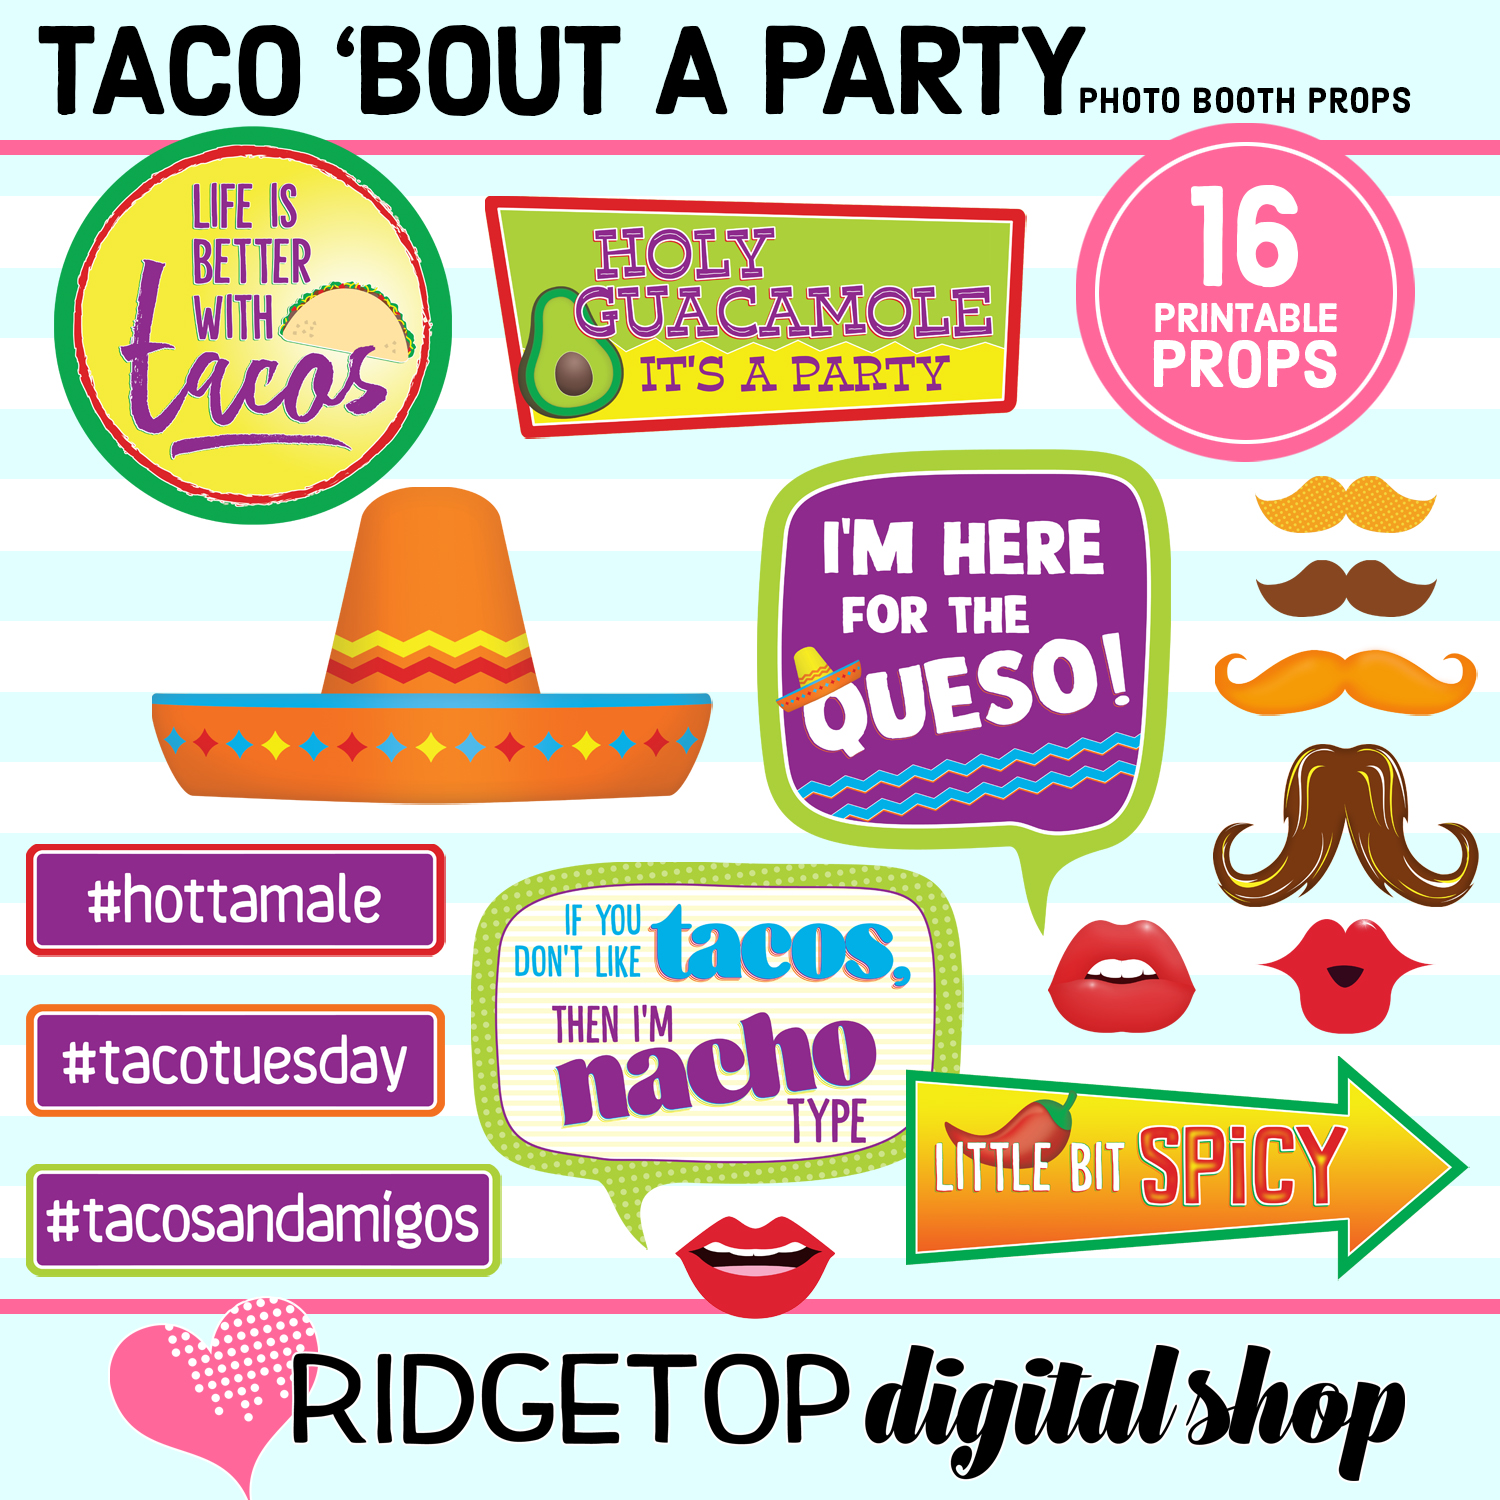 Taco bout a party printable photo booth props